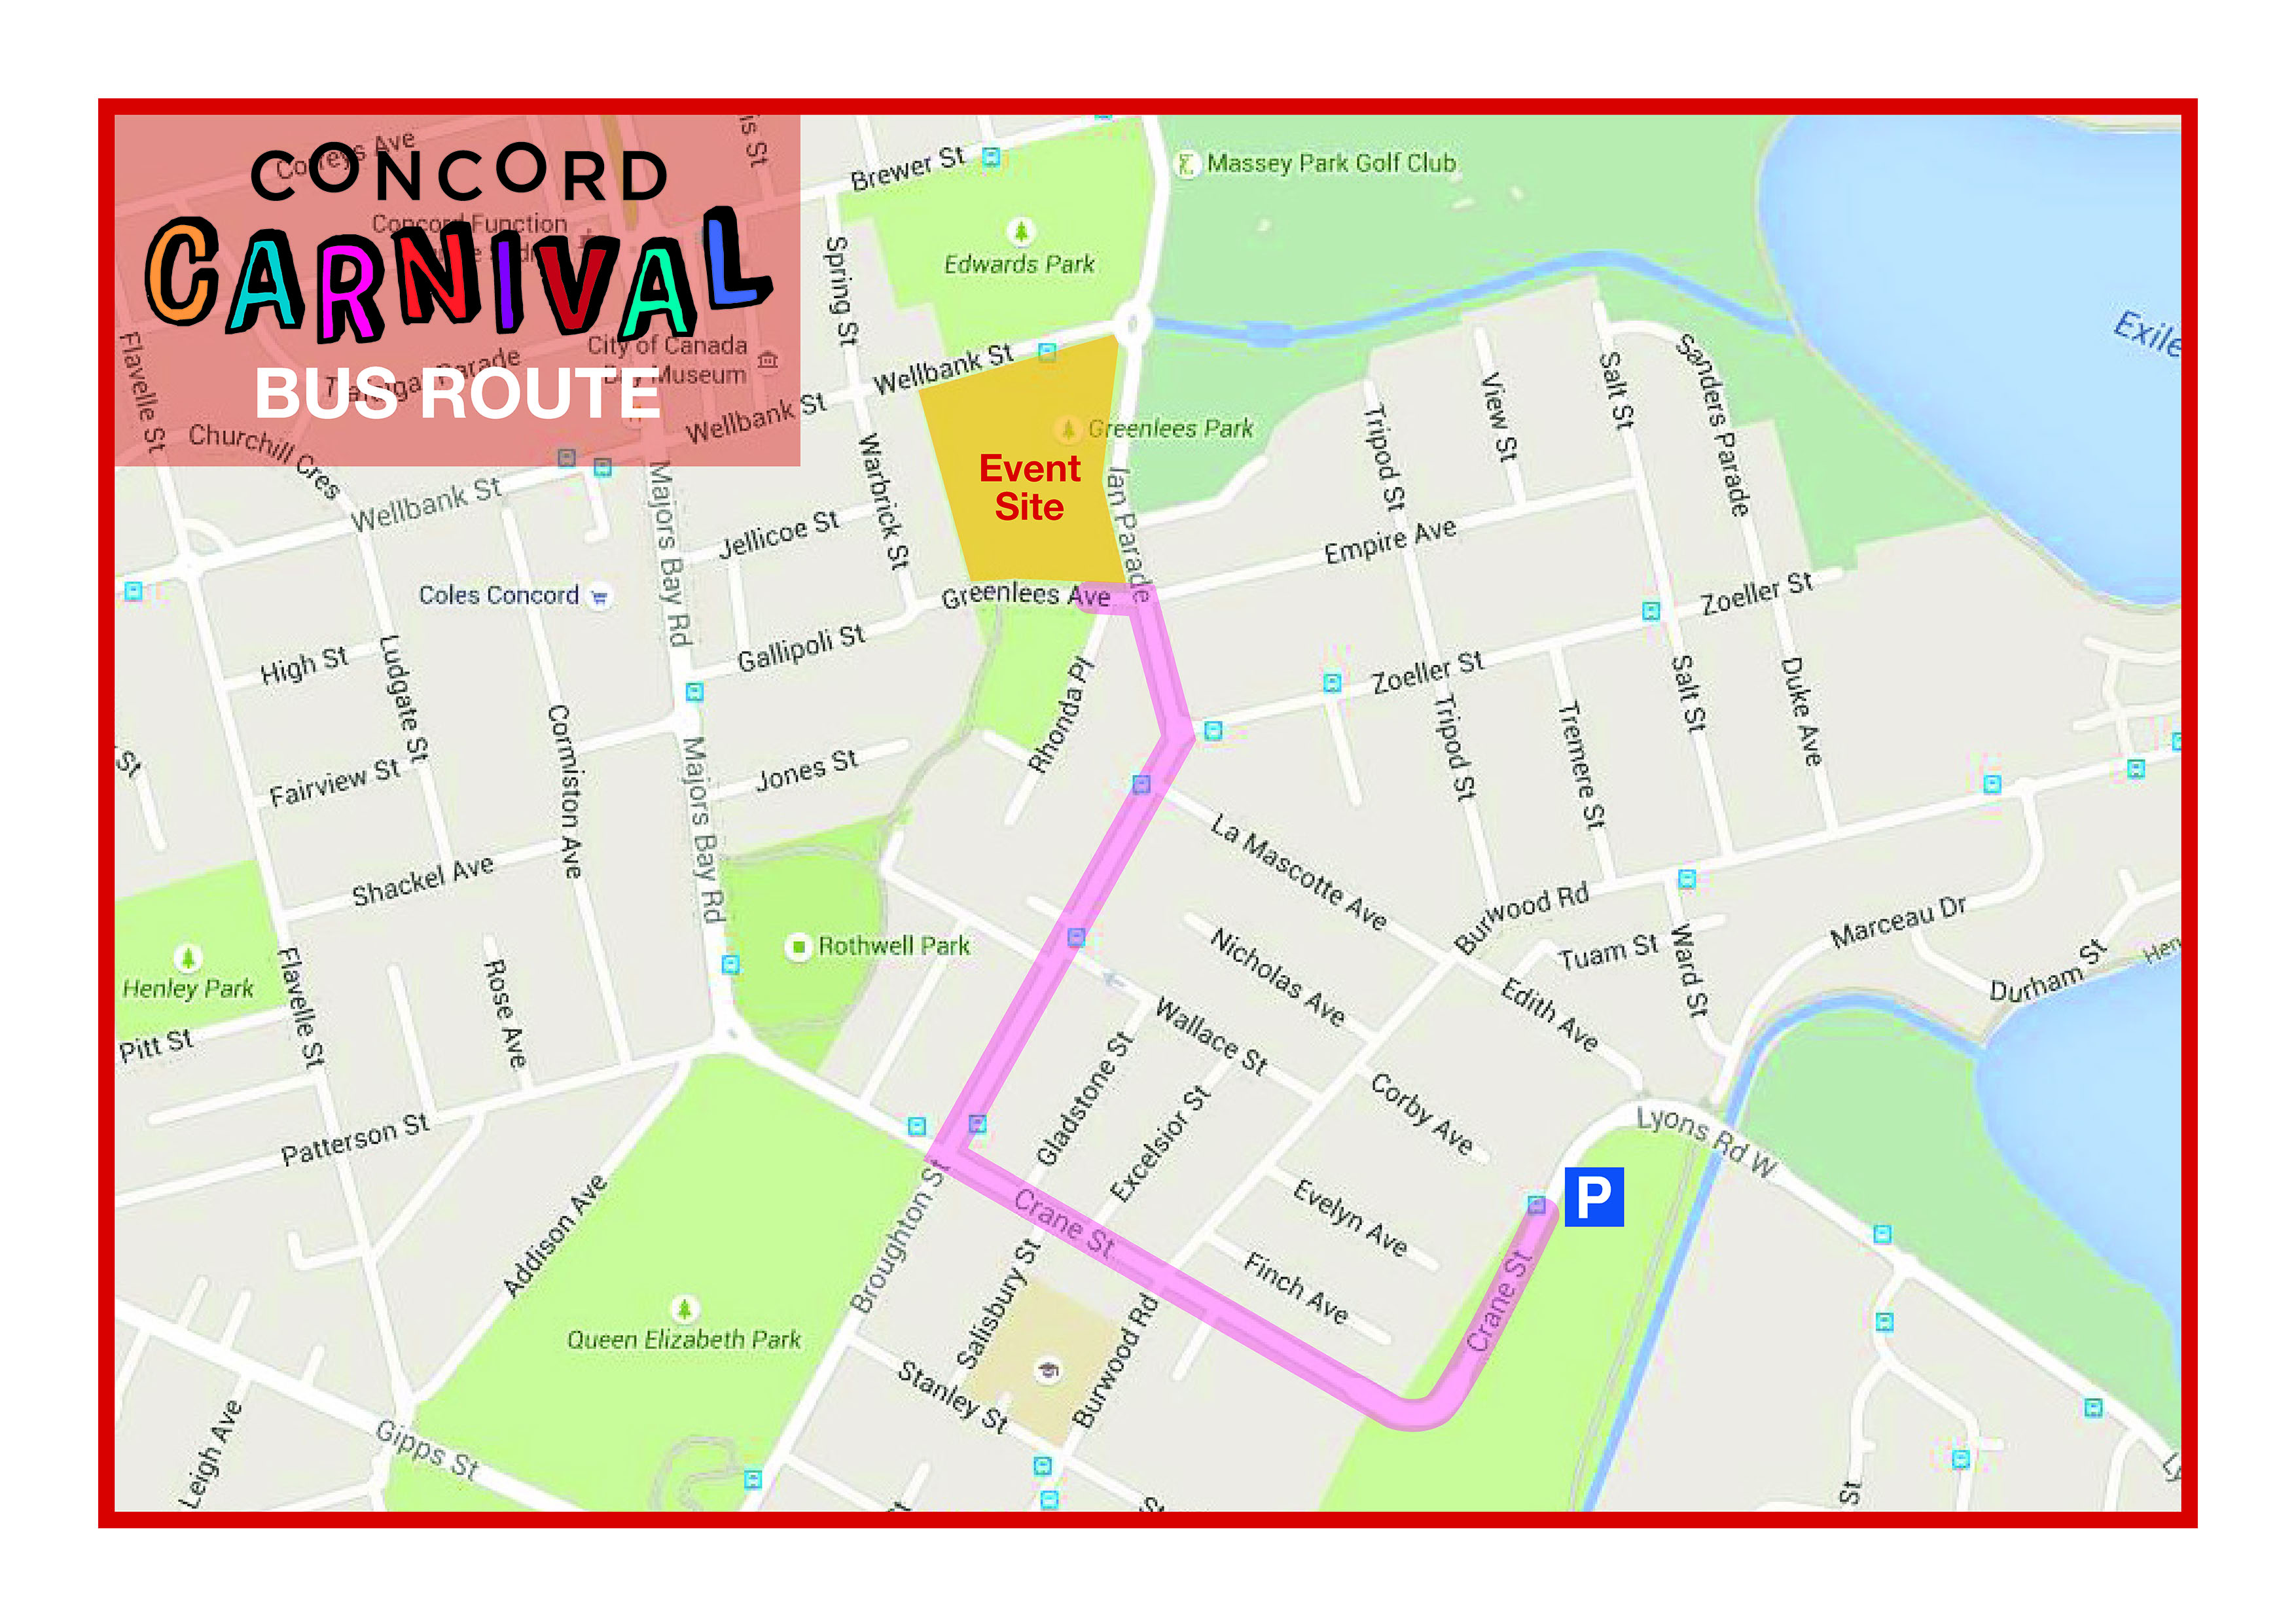 Concord Carnival shuttle map